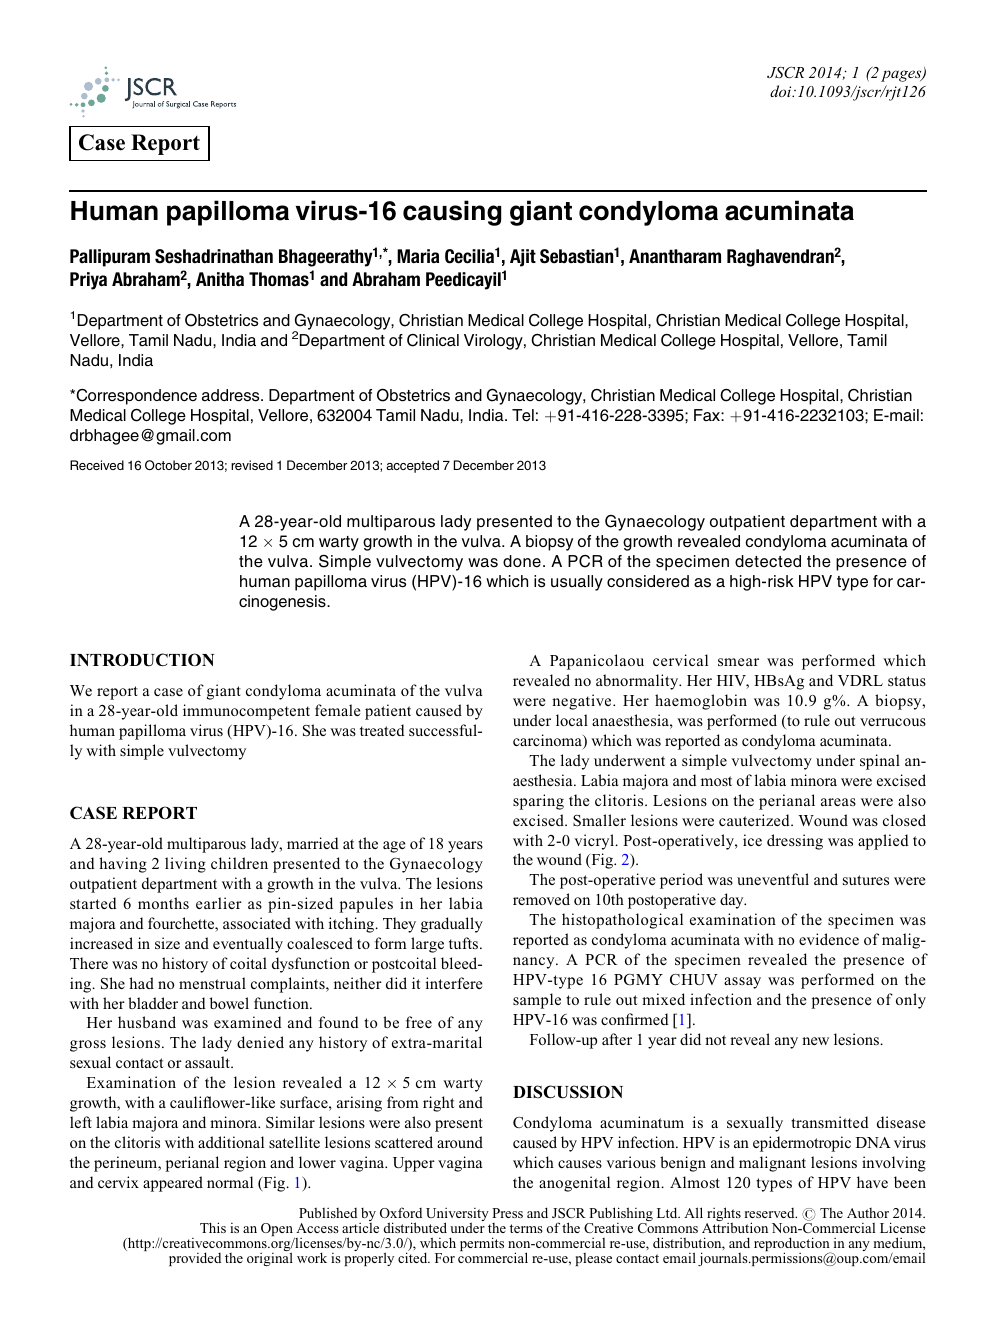 hpv vaccine research articles